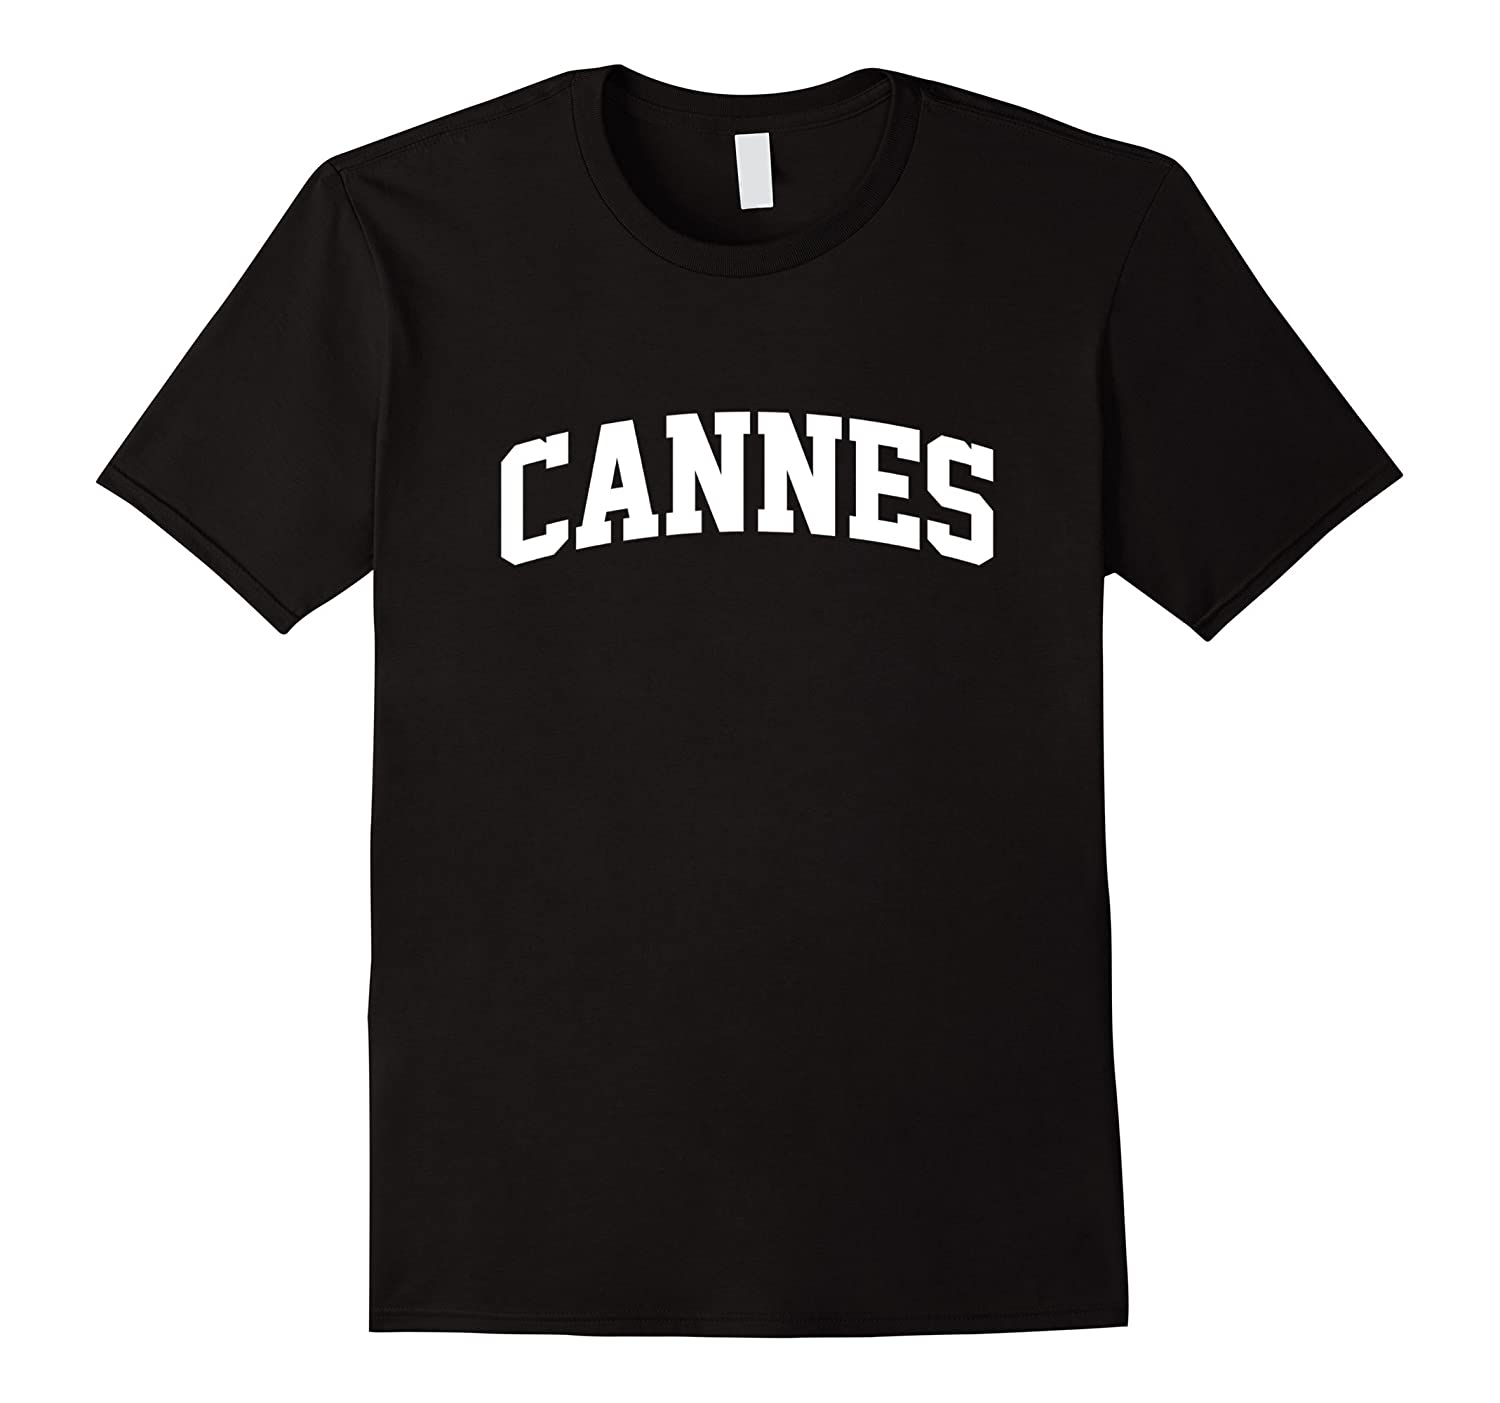 Cannes Workout Training Activewear T-Shirt-Vaci